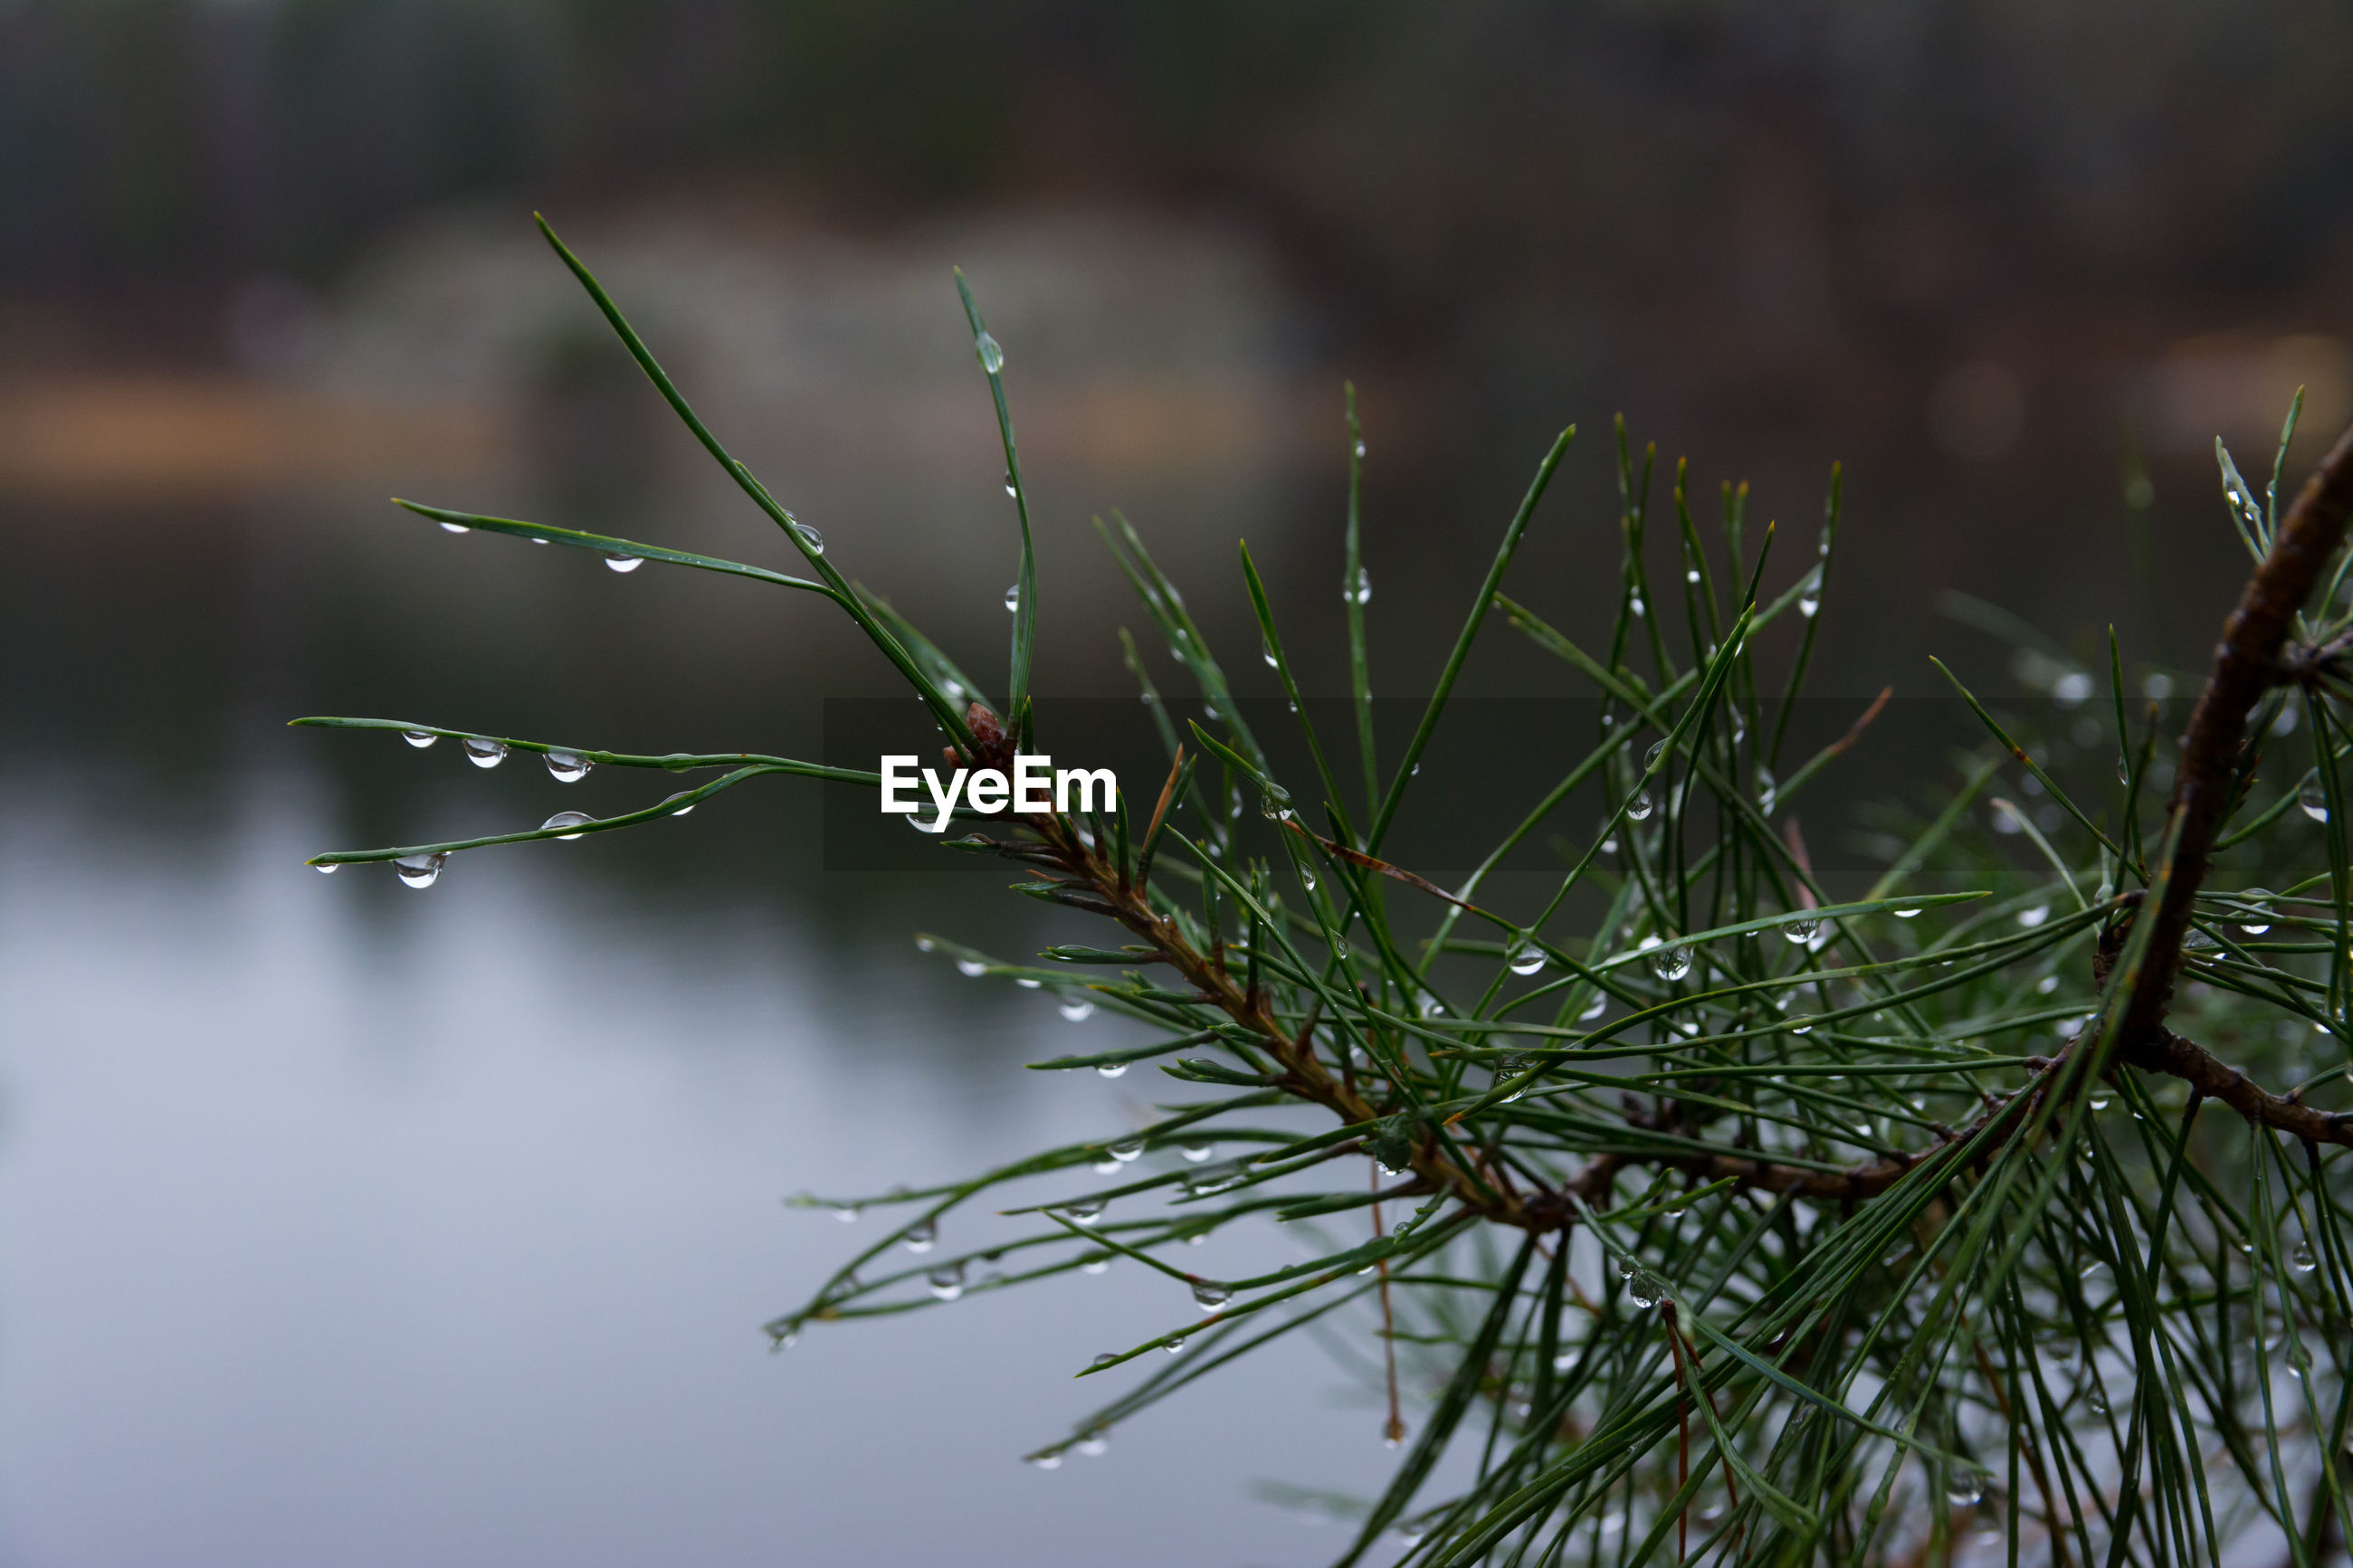 plant, water, green color, close-up, growth, focus on foreground, drop, nature, beauty in nature, wet, no people, day, leaf, plant part, selective focus, tranquility, outdoors, cold temperature, rain, needle - plant part, rainy season, raindrop, dew, coniferous tree, blade of grass